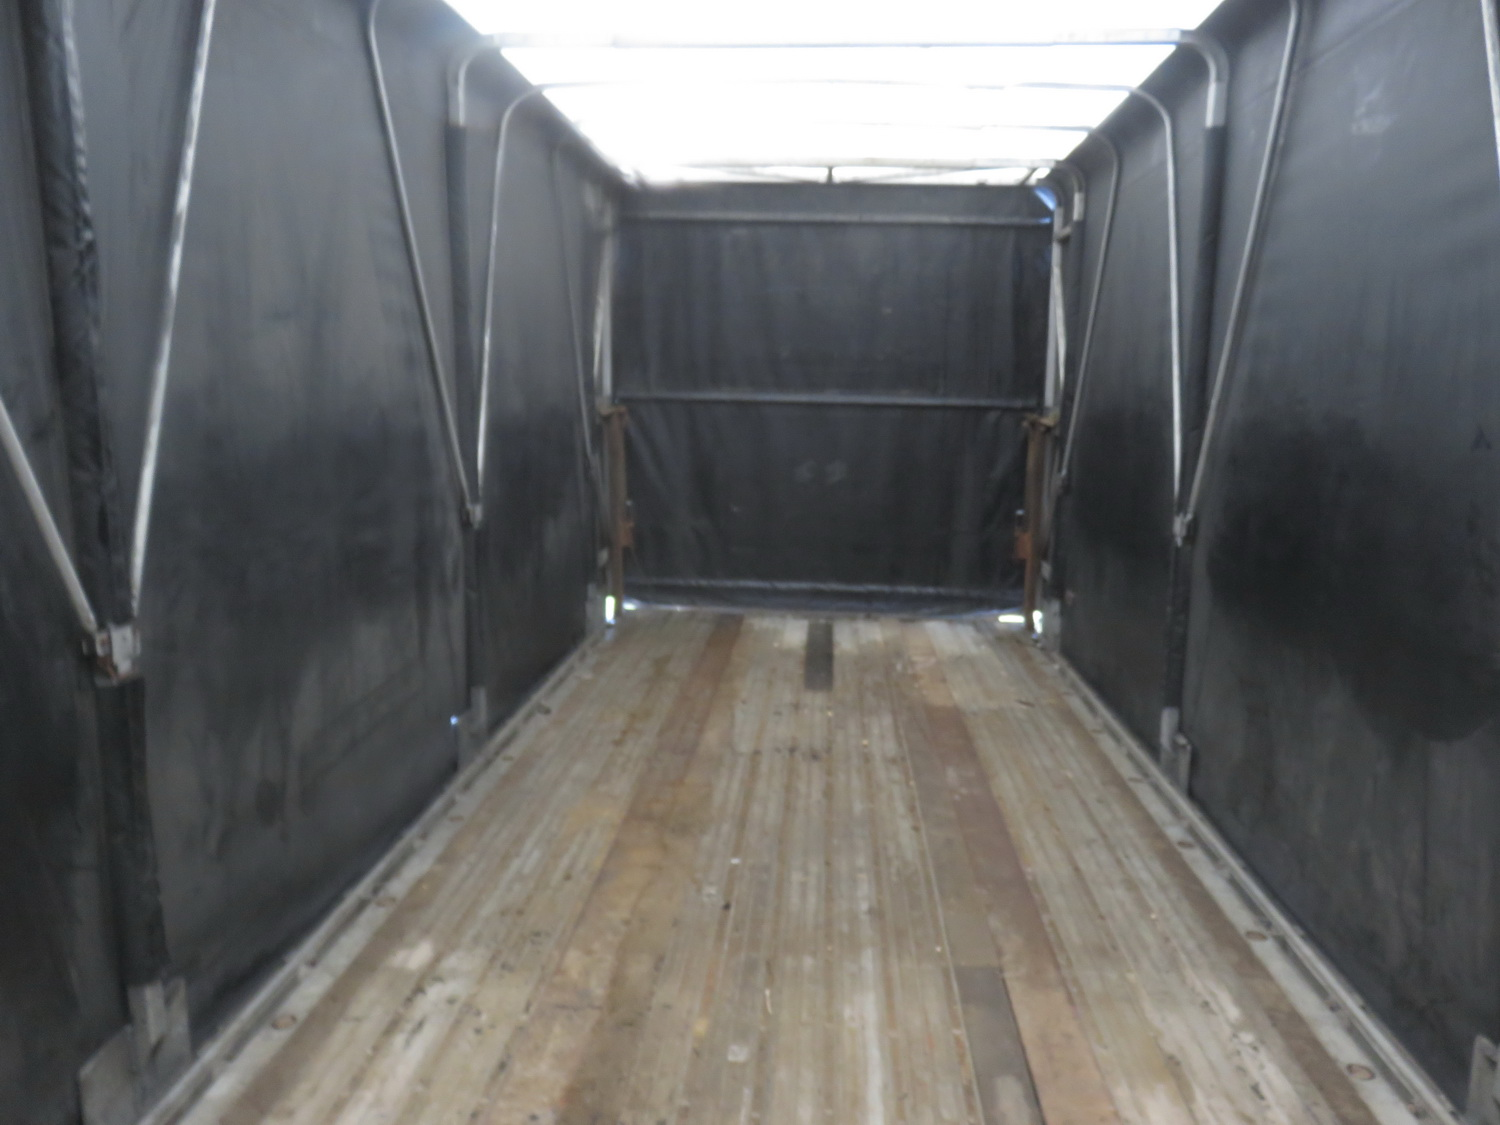 "TRANSCRAFT EAGLE W2, 48' X 96"" TANDEM AXLE CURTAIN SIDE TRAILER - S/N 1TTF48206R1042095 - Image 7 of 7"